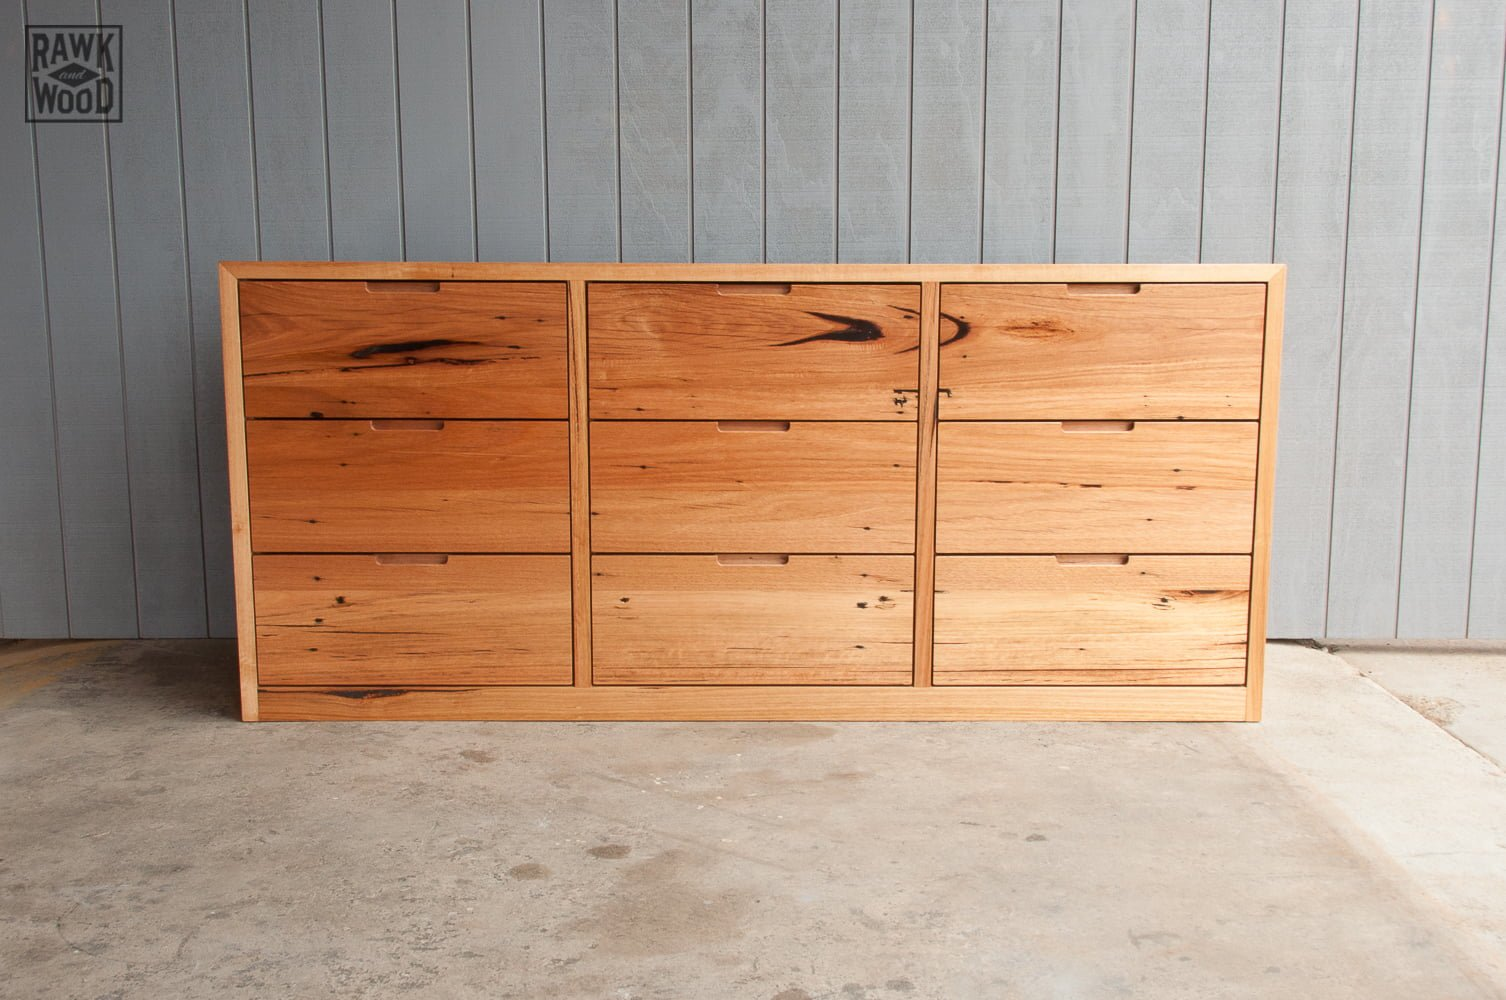 recycled-timber-dresser, made in Melbourne by Rawk and Wood